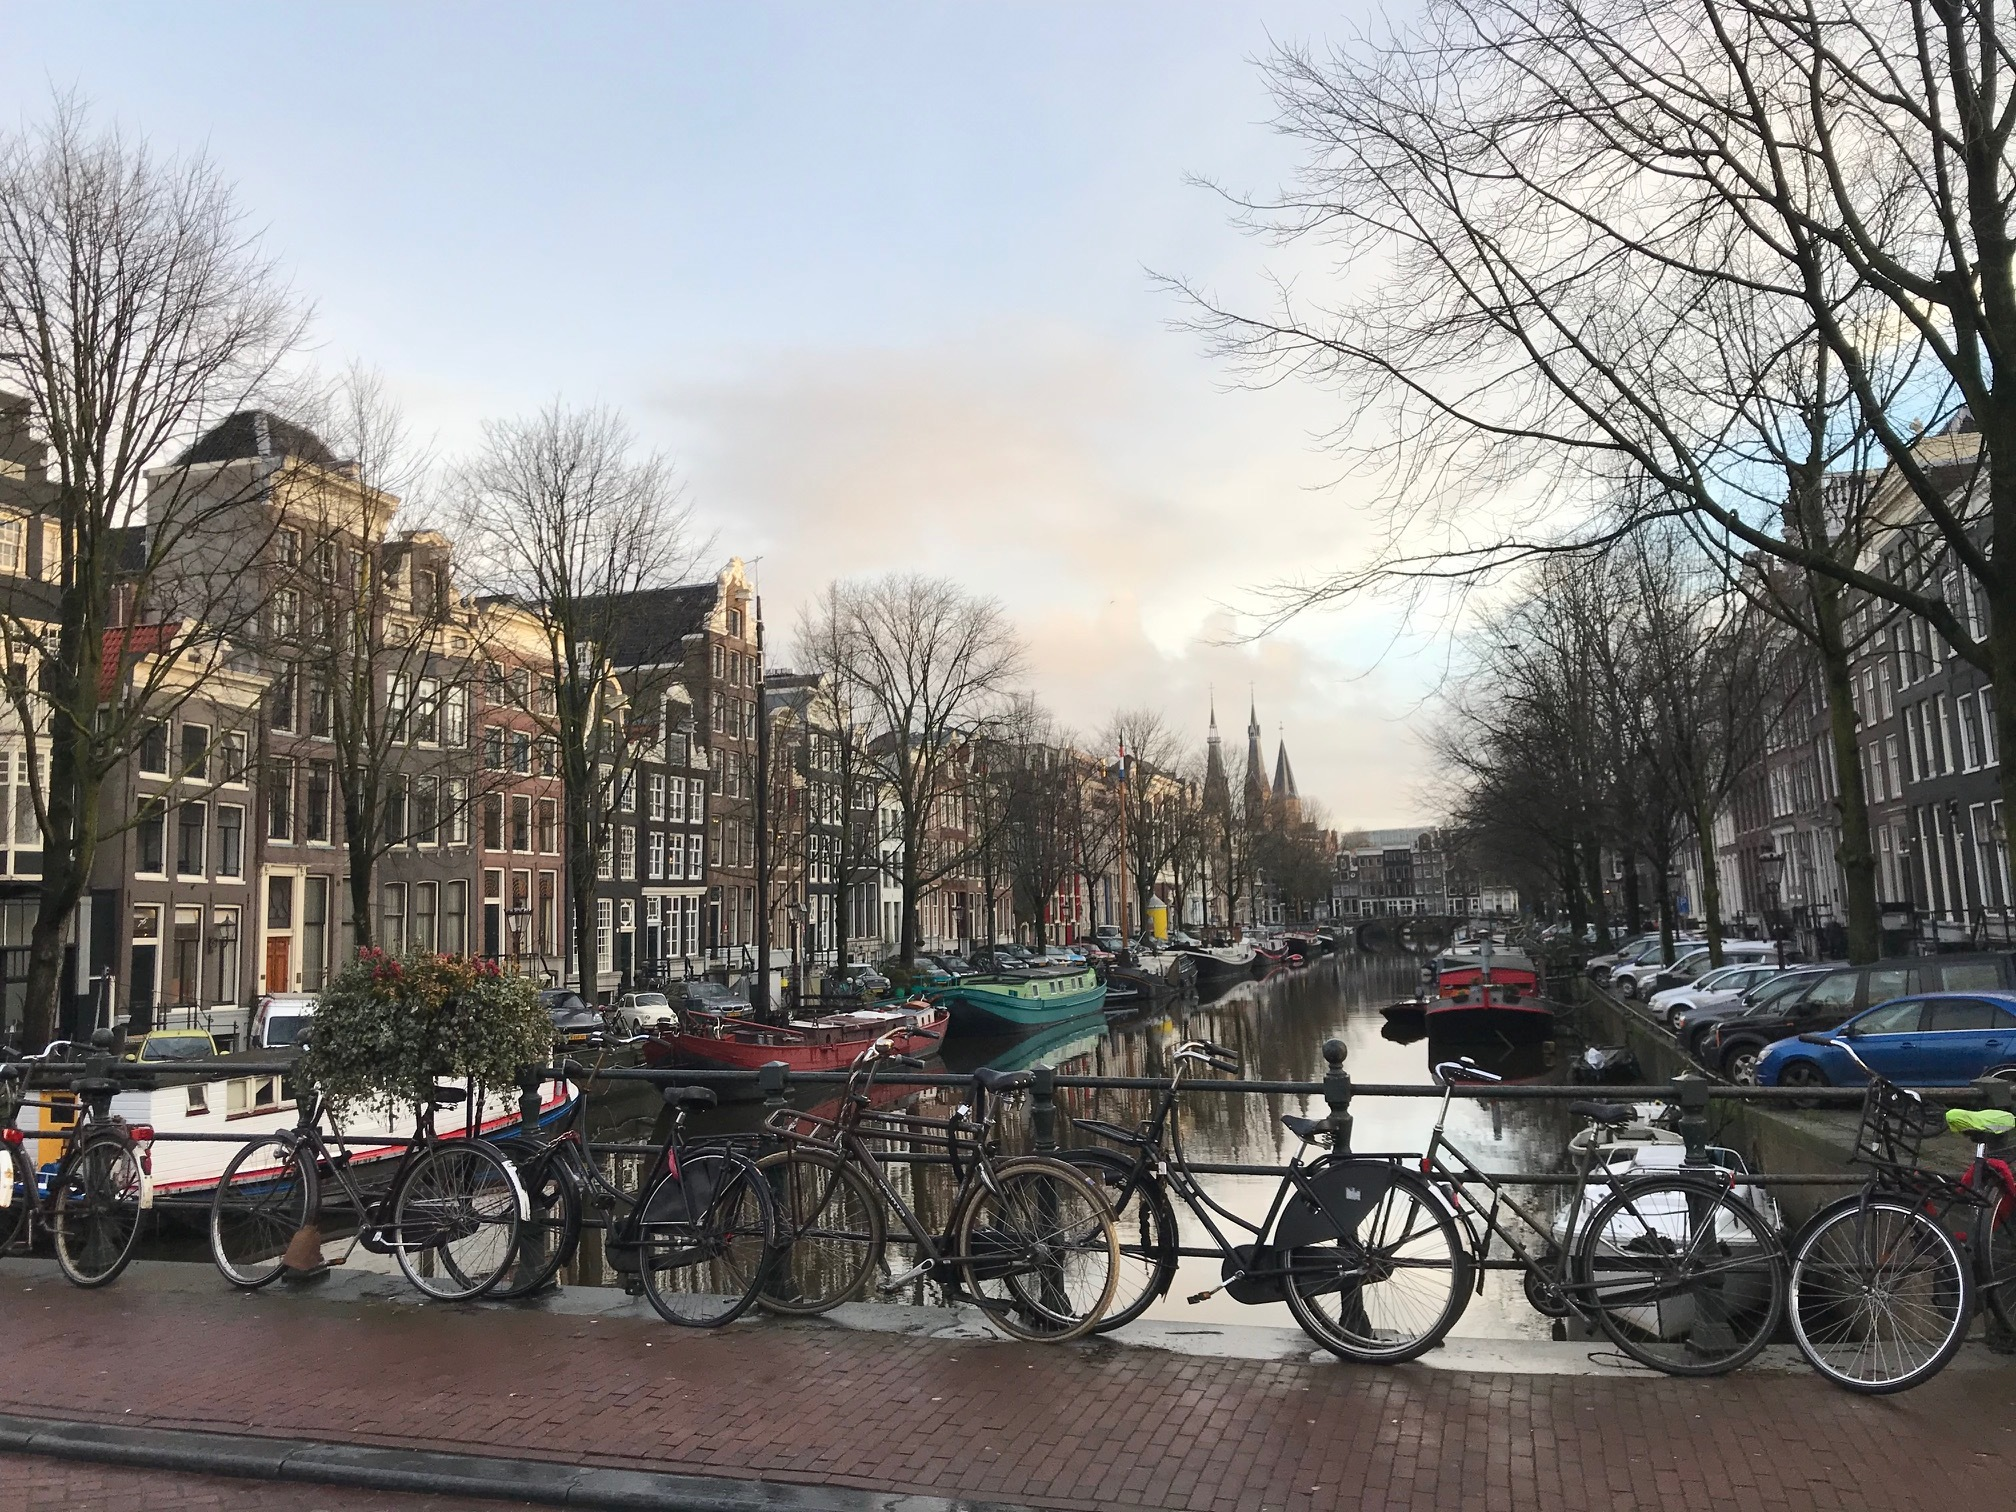 Passing over a canal on the way to the EACR Cell Death Meeting. - Amsterdam, NL, 1 Feb 18